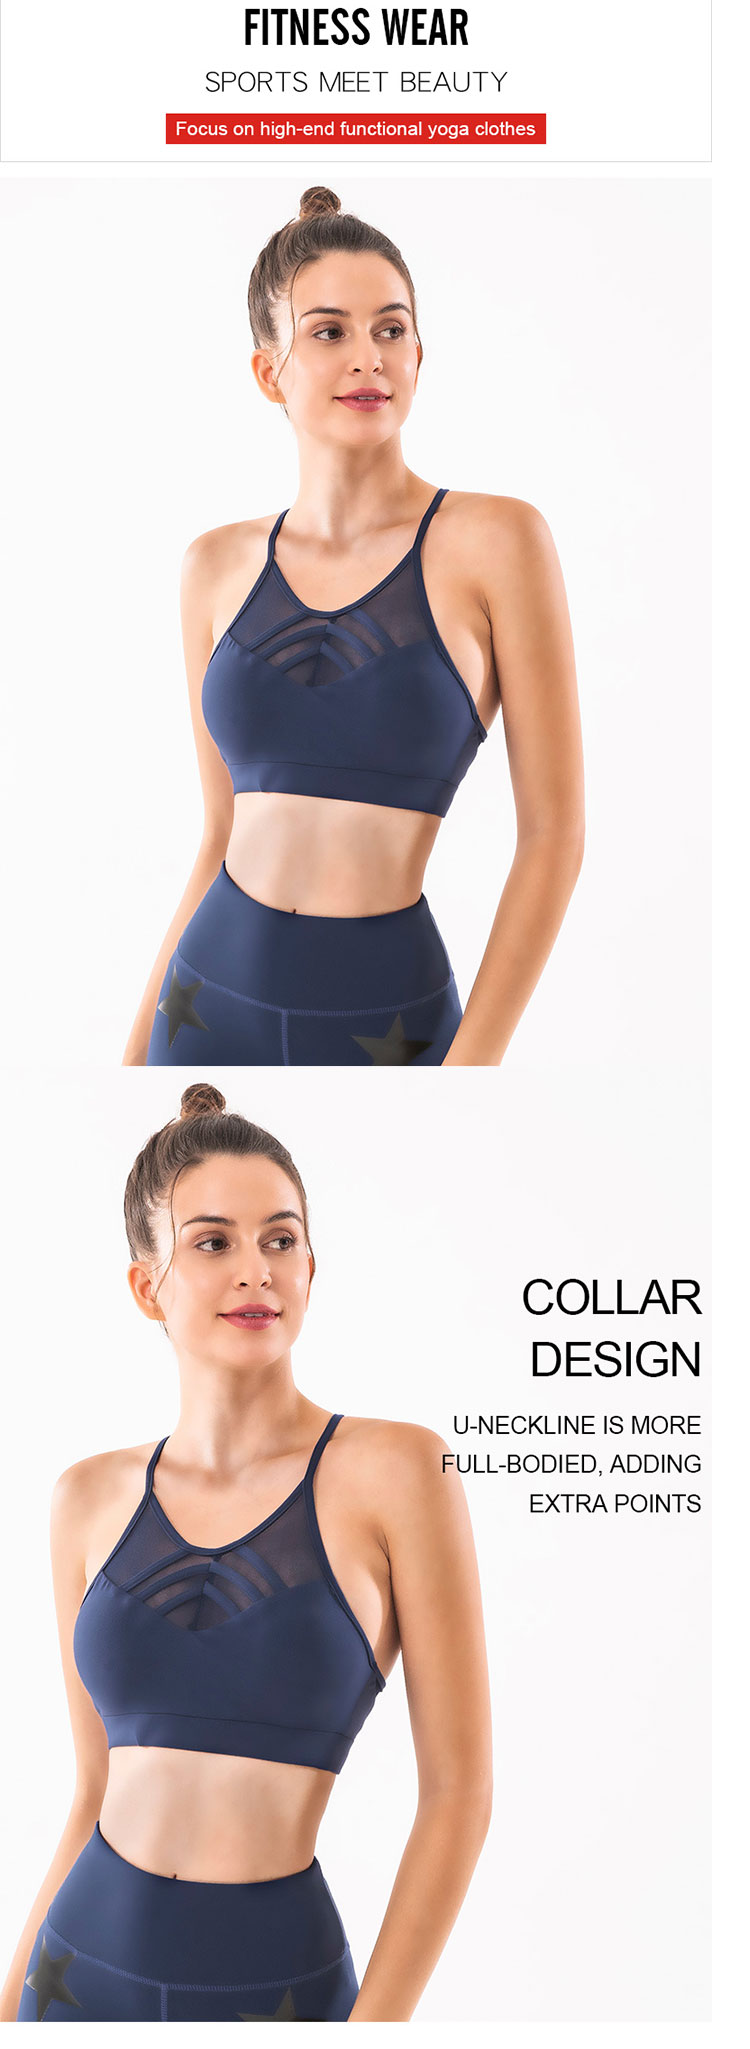 The-simple-casual-best-sports-bra-for-running--is-made-of-functional-fabrics